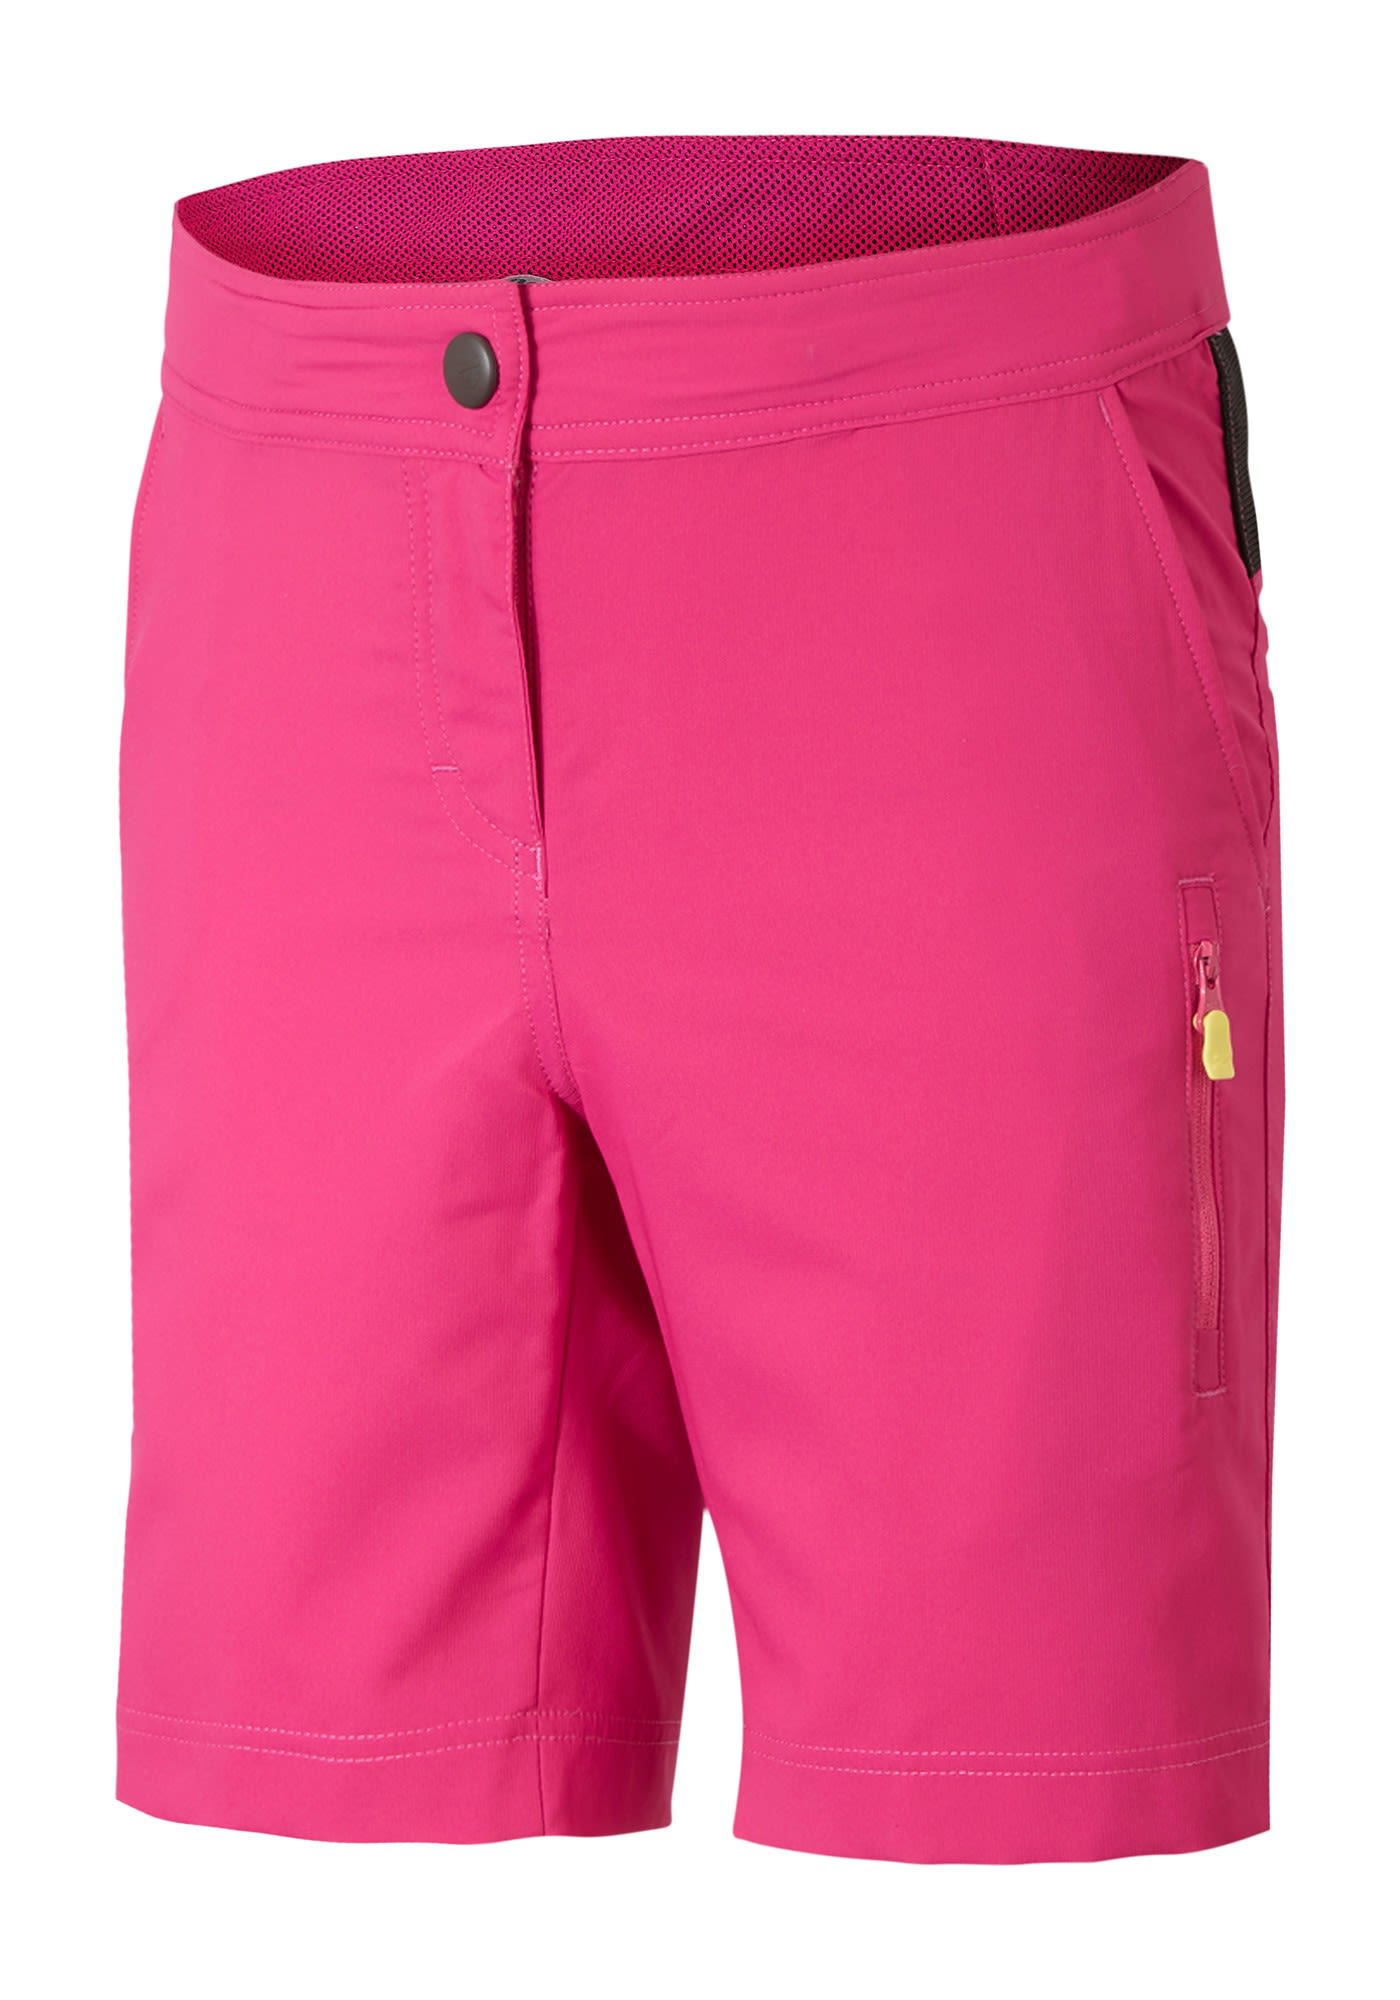 Ziener Junior Congaree X-Function Pink, 176 -Farbe Pink Blossom, 176